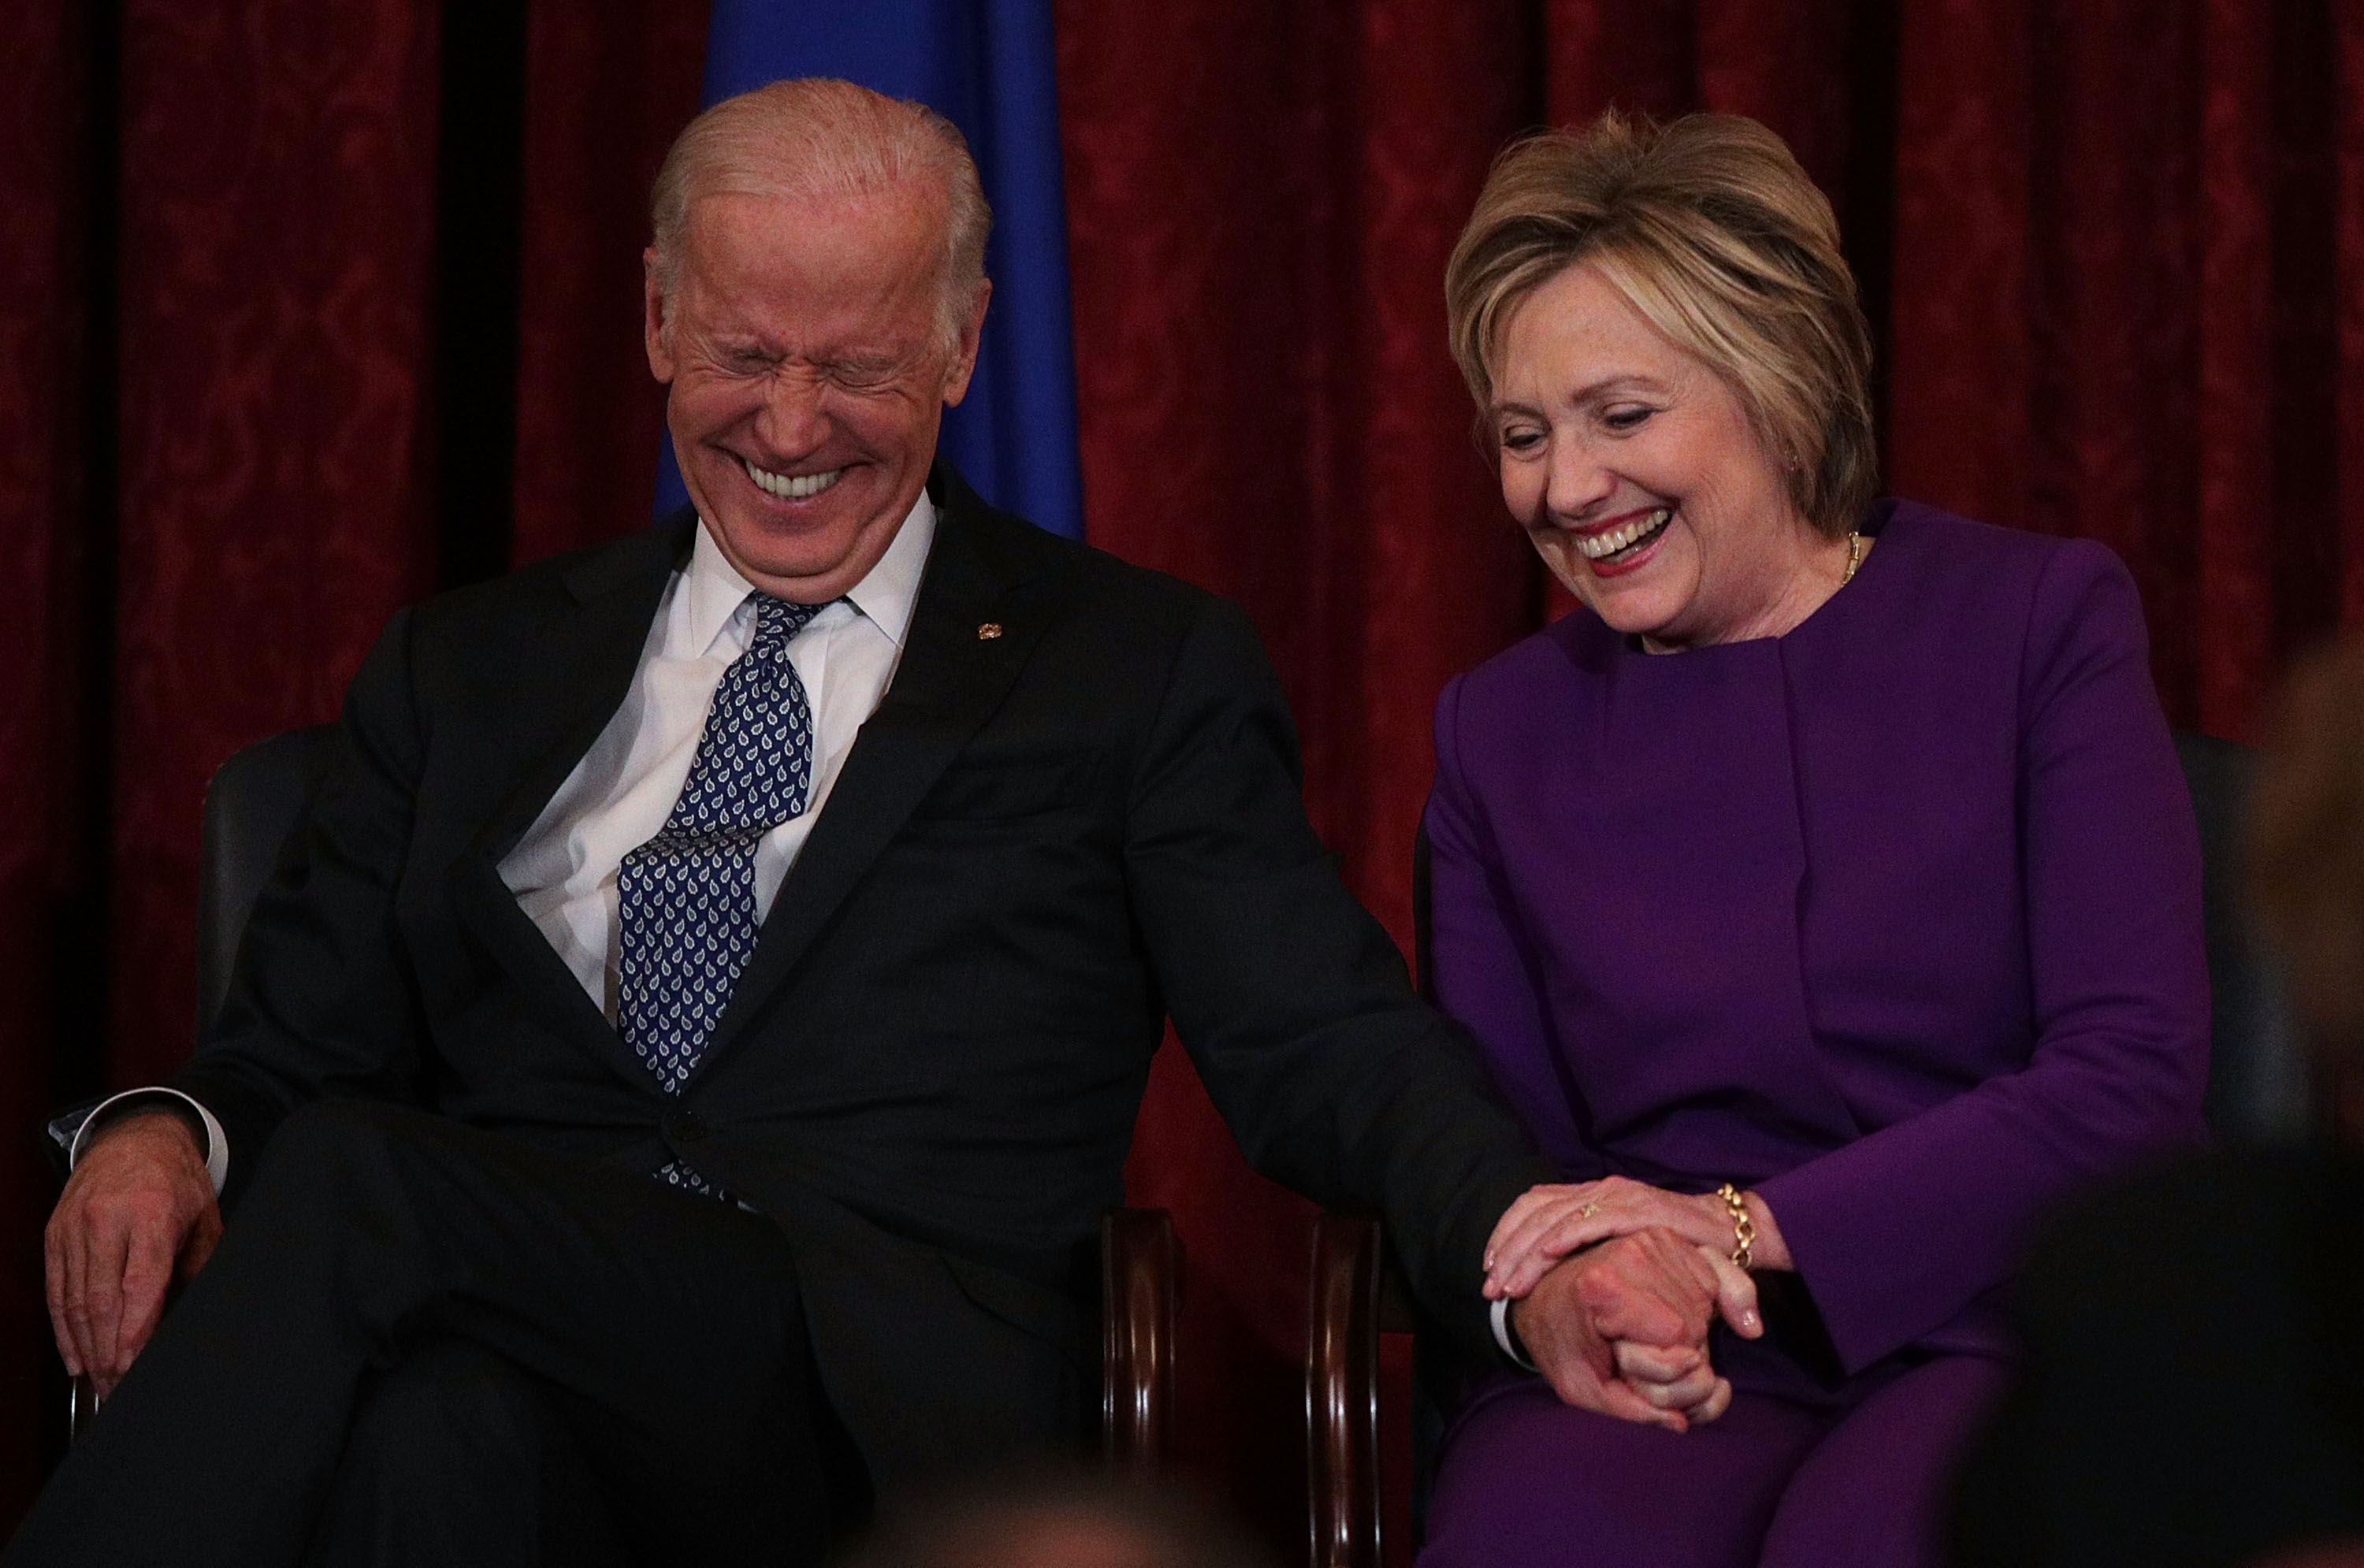 Former U.S. Secretary of State Hillary Clinton (R) shares a moment with Vice President Joseph Biden (L) during a leadership portrait unveiling ceremony for Senate Minority Leader Sen. Harry Reid (D-NV) December 8, 2016 on Capitol Hill in Washington, DC.   (Alex Wong--Getty Images)